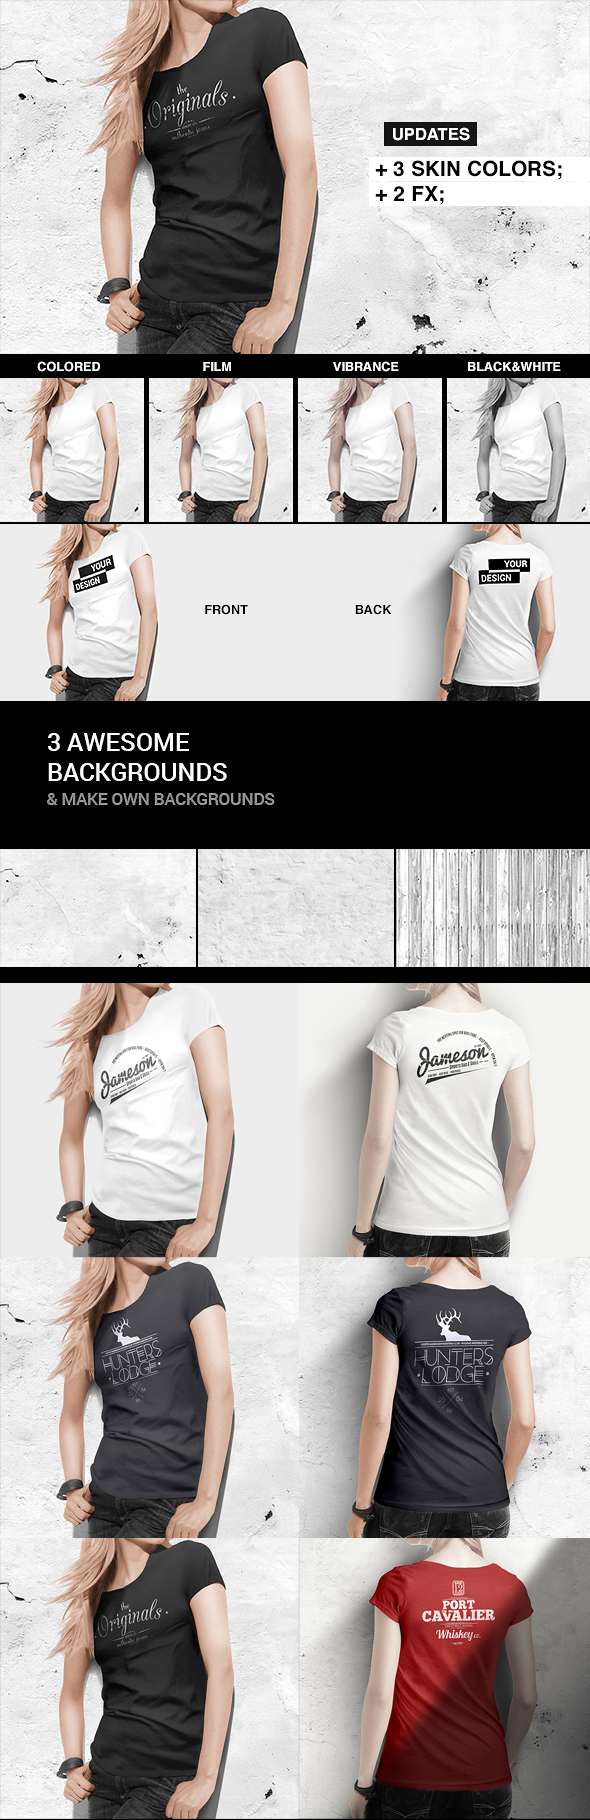 T-shirt / Tank Shirt Bundle Mockup Template